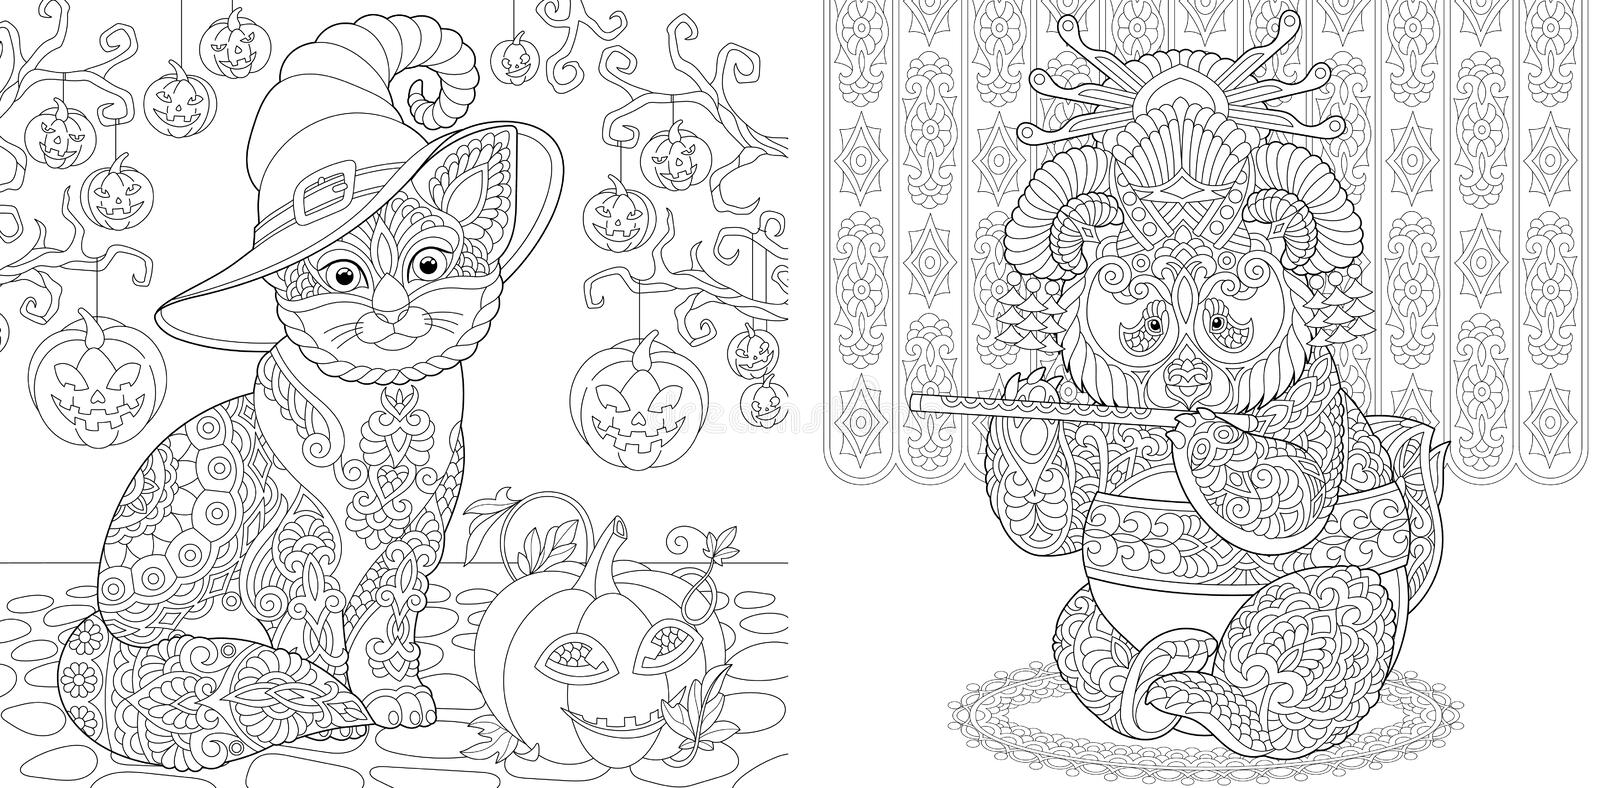 Halloween Coloring Pages Stock Illustrations – 251 Halloween Coloring Pages  Stock Illustrations, Vectors & Clipart - Dreamstime